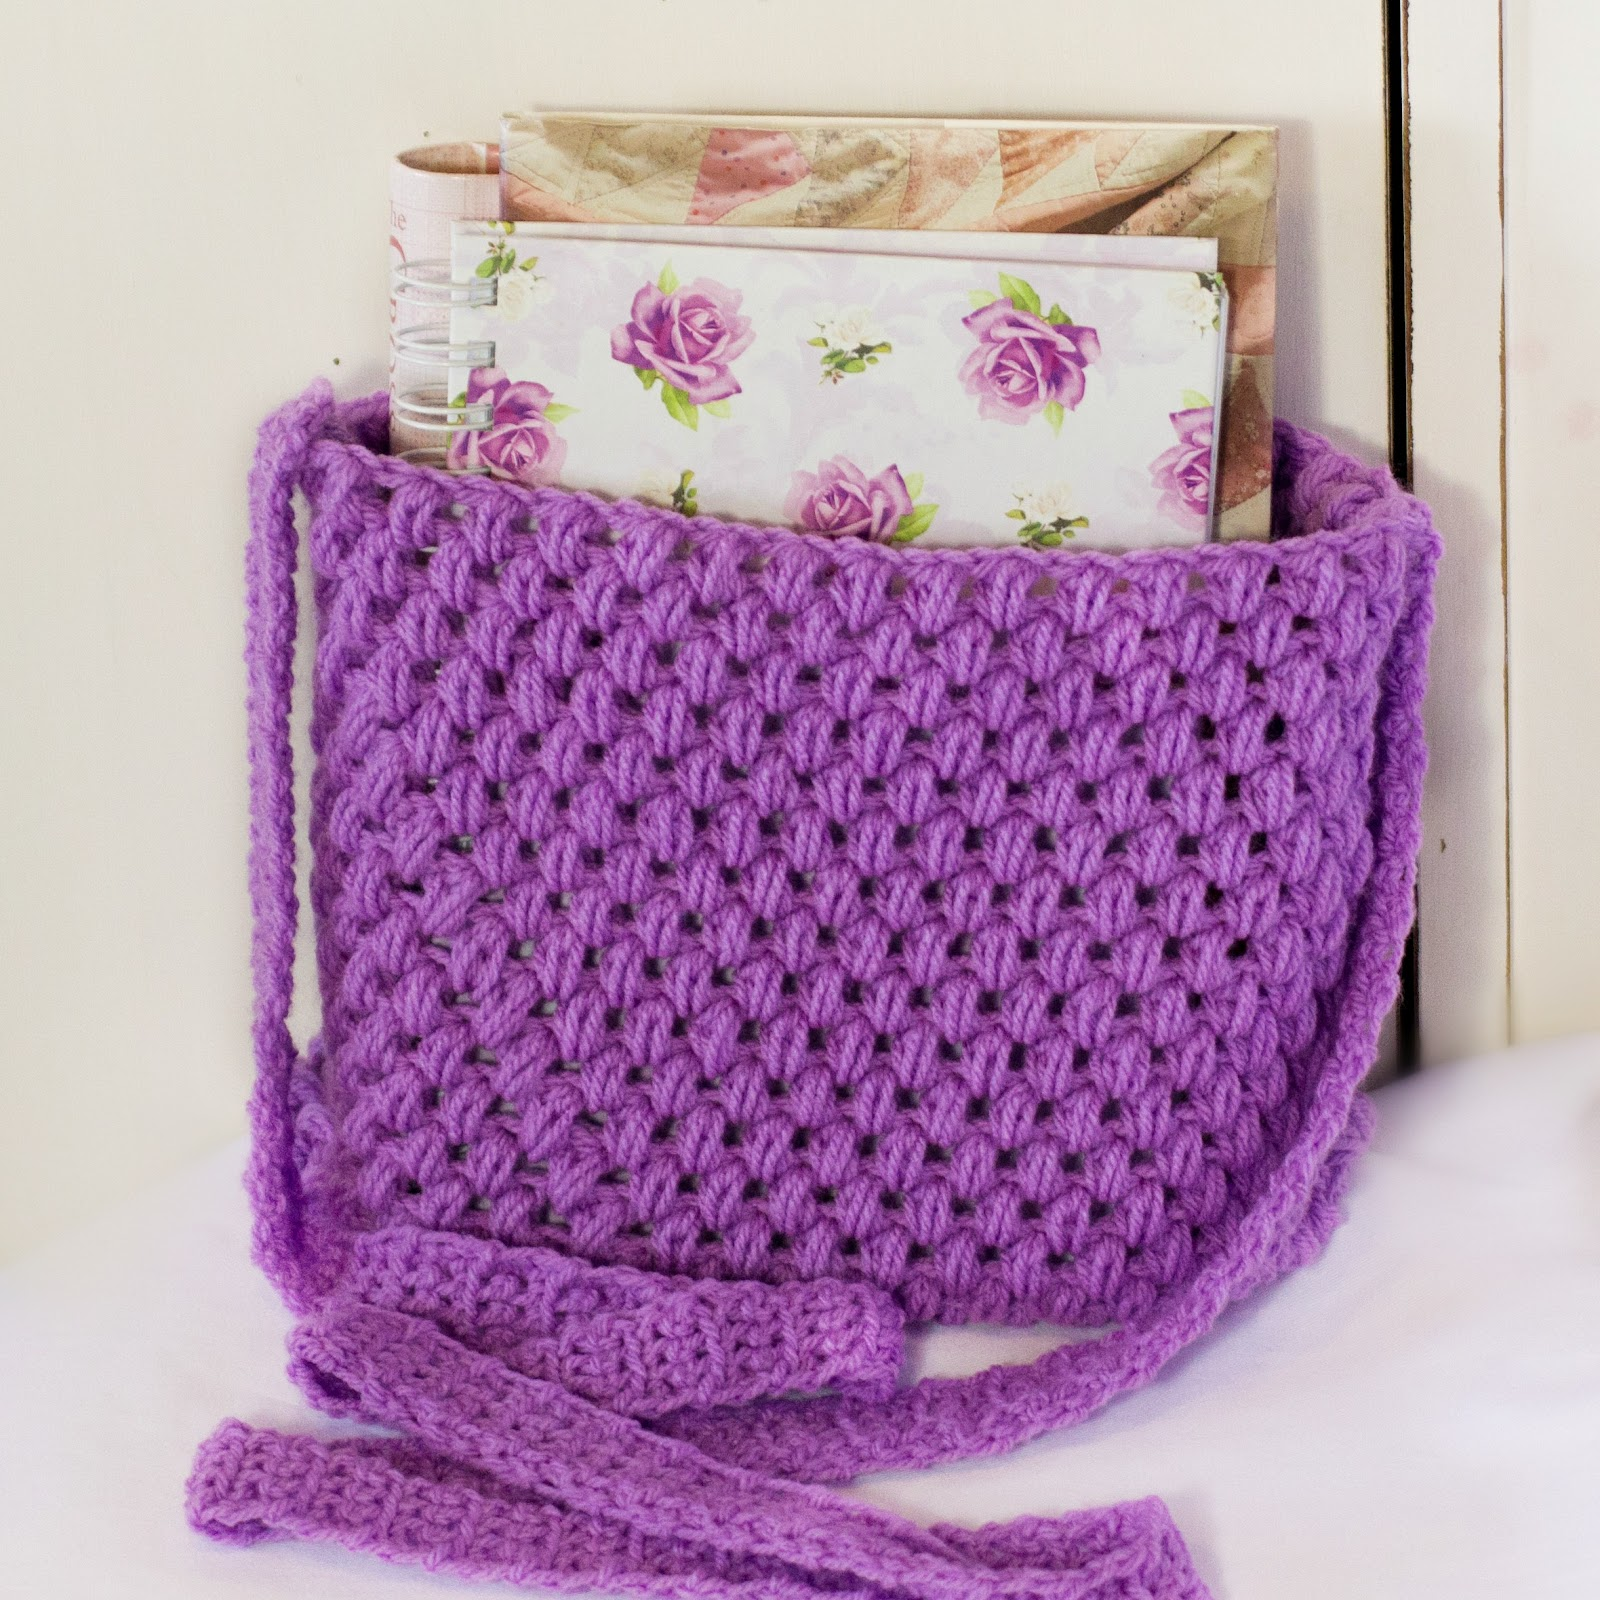 Crochet Pouch : Hopeful Honey Craft, Crochet, Create: March 2012